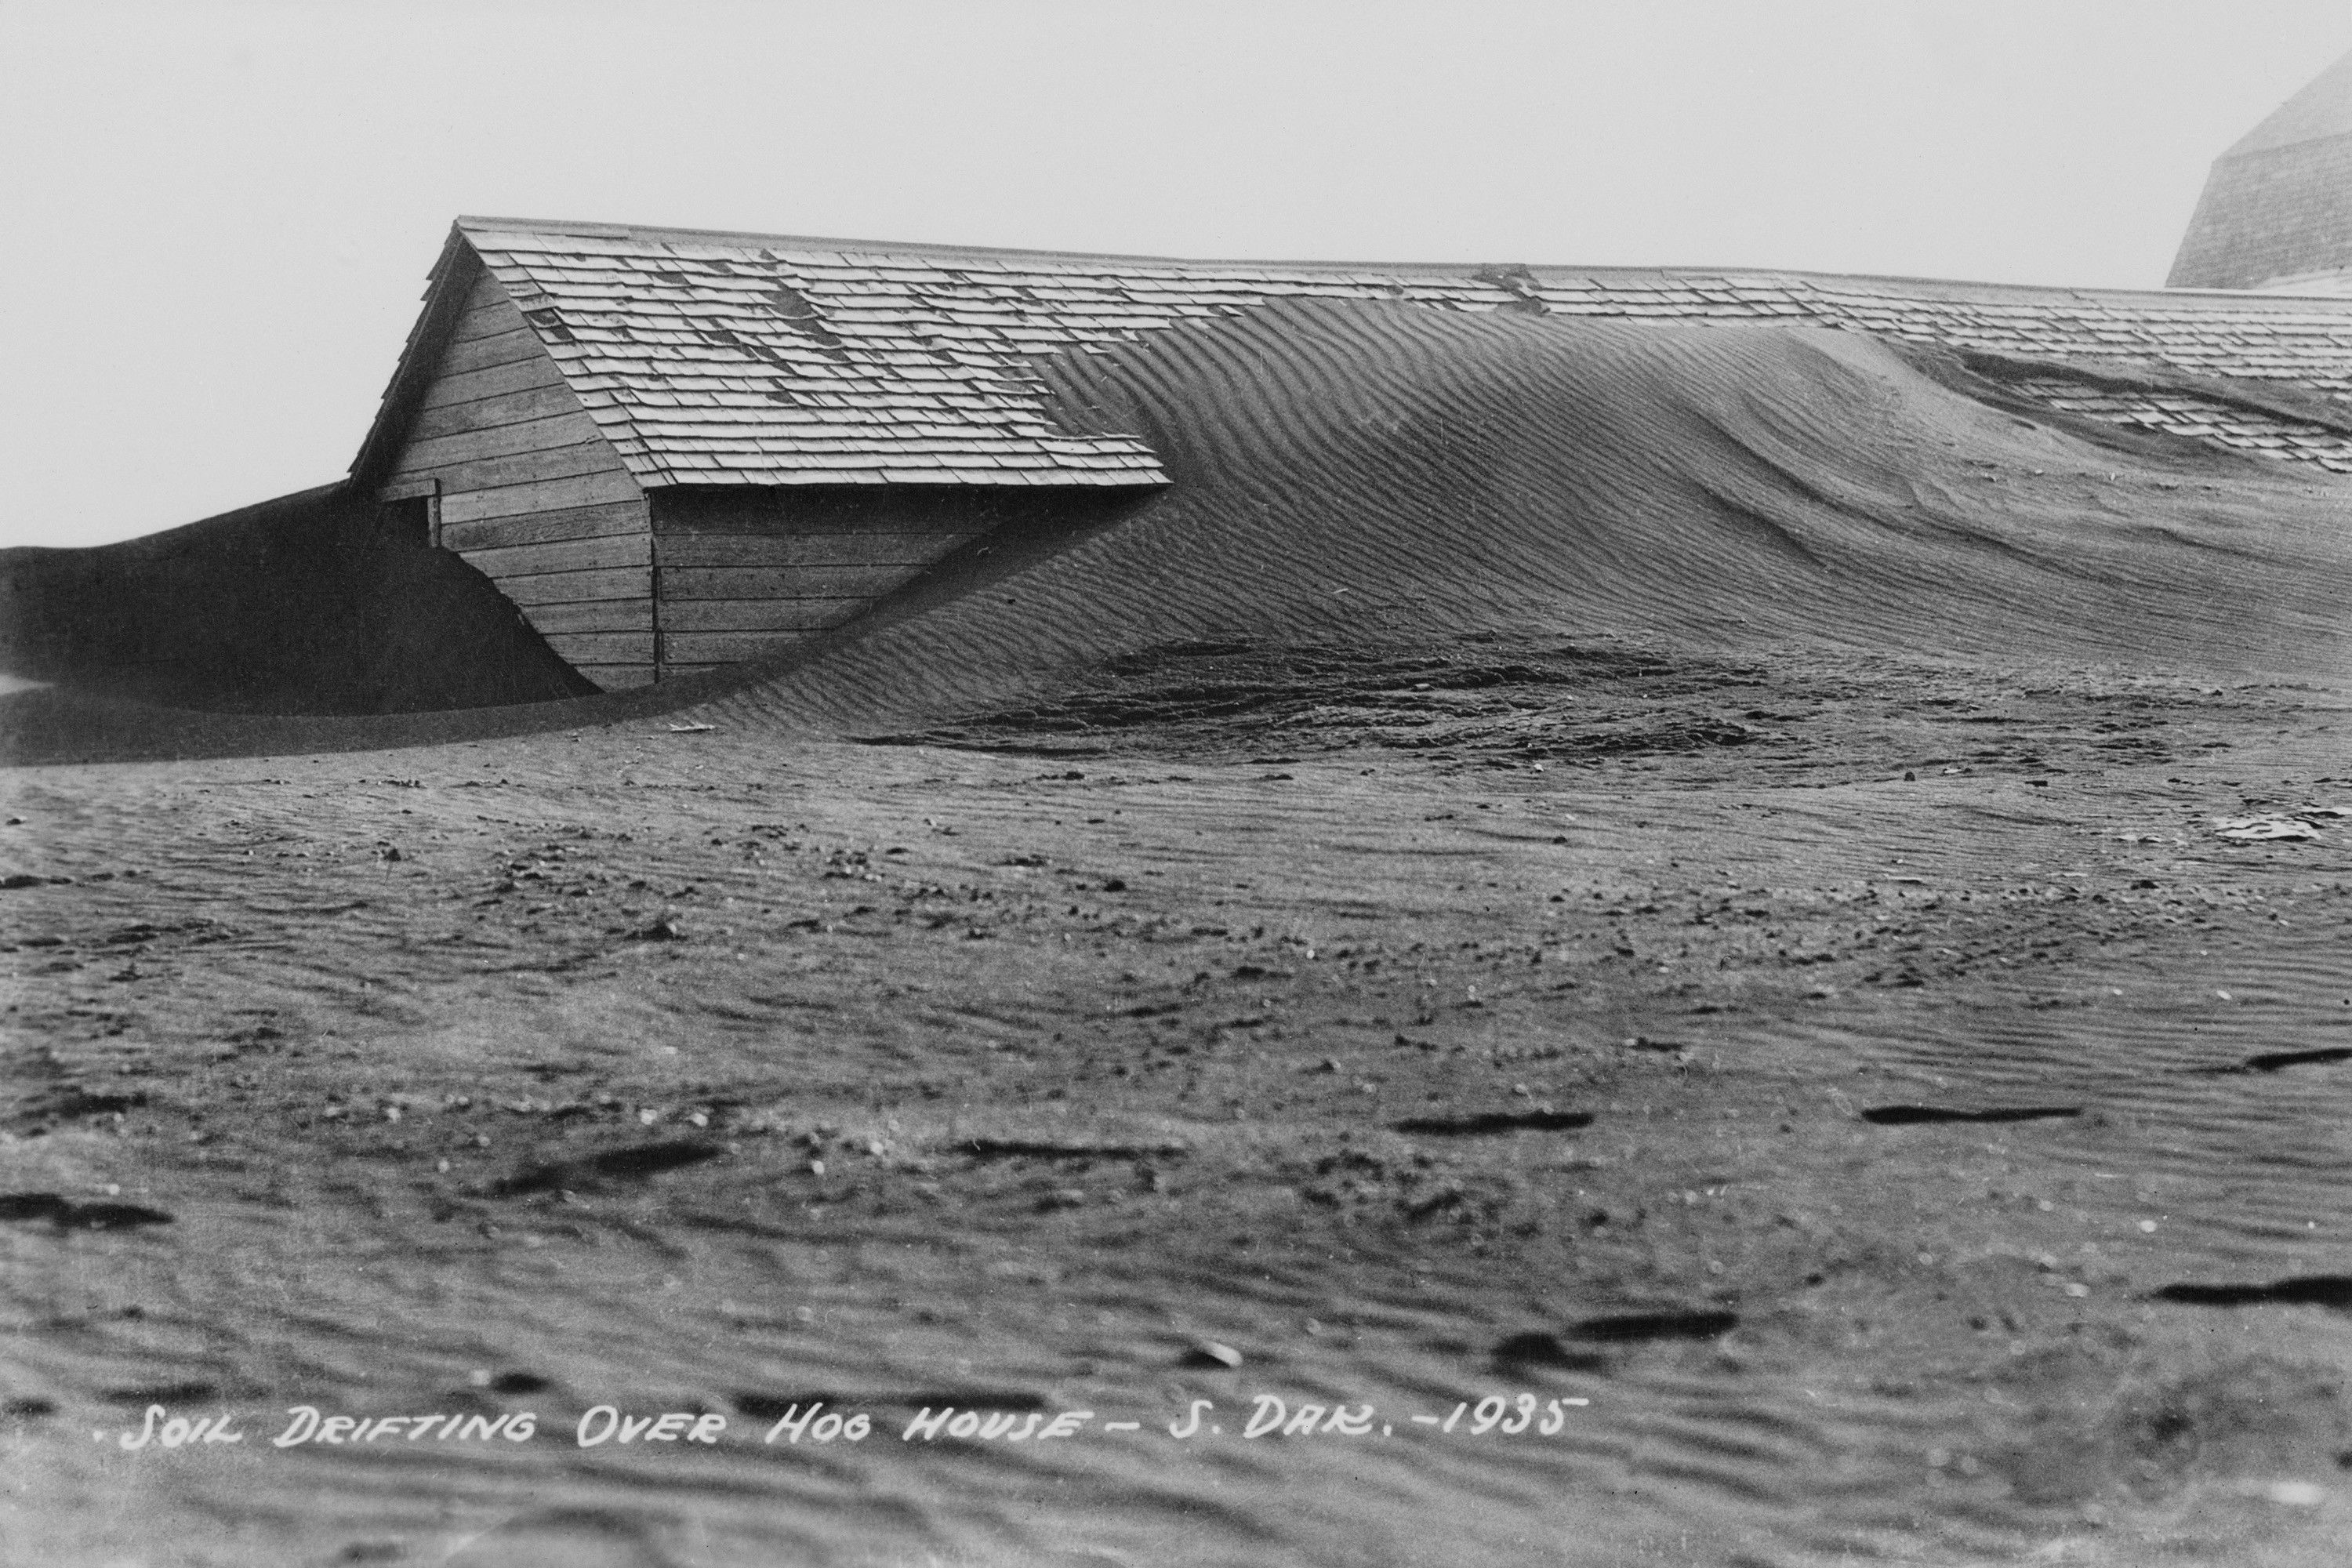 """A black and white photograph of a wooden building mostly covered by dry dust. A handwritten caption on the photograph reads """"SOIL DRIFTING OVER HOG HOUSE- S. DAK.-1935"""